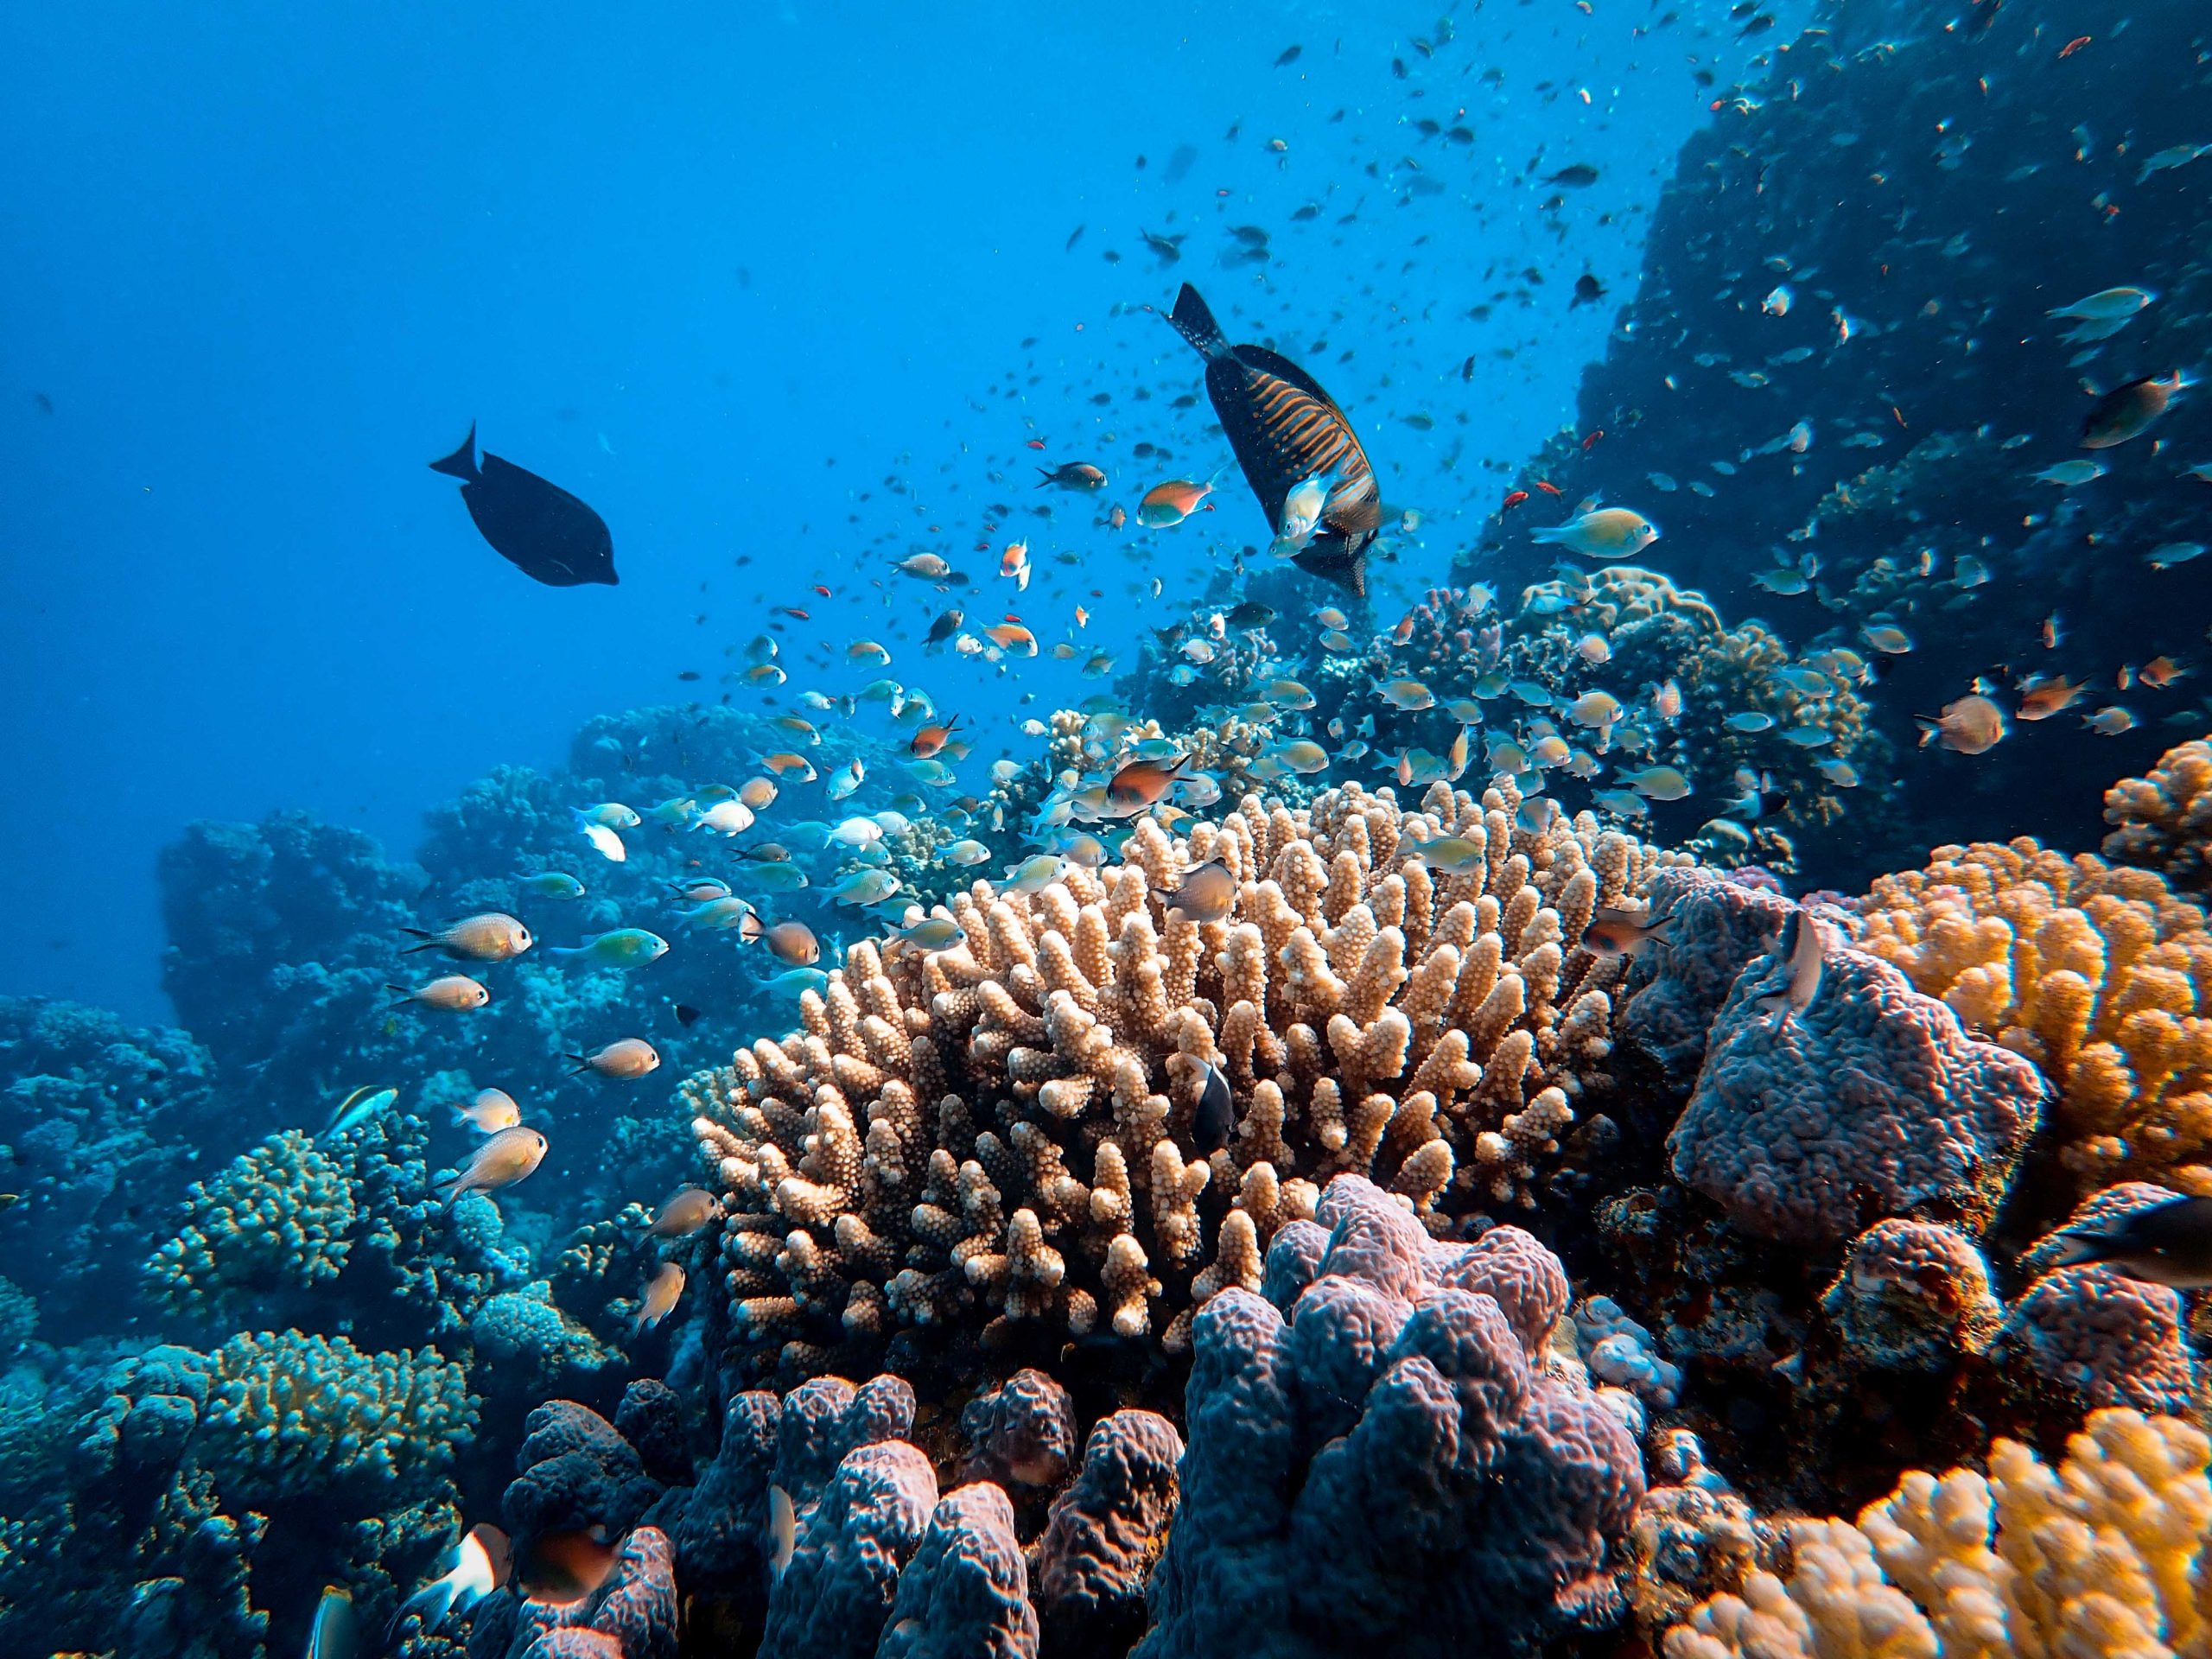 UNESCO recommends Great Barrier Reef to be included in List of World Heritage in Danger